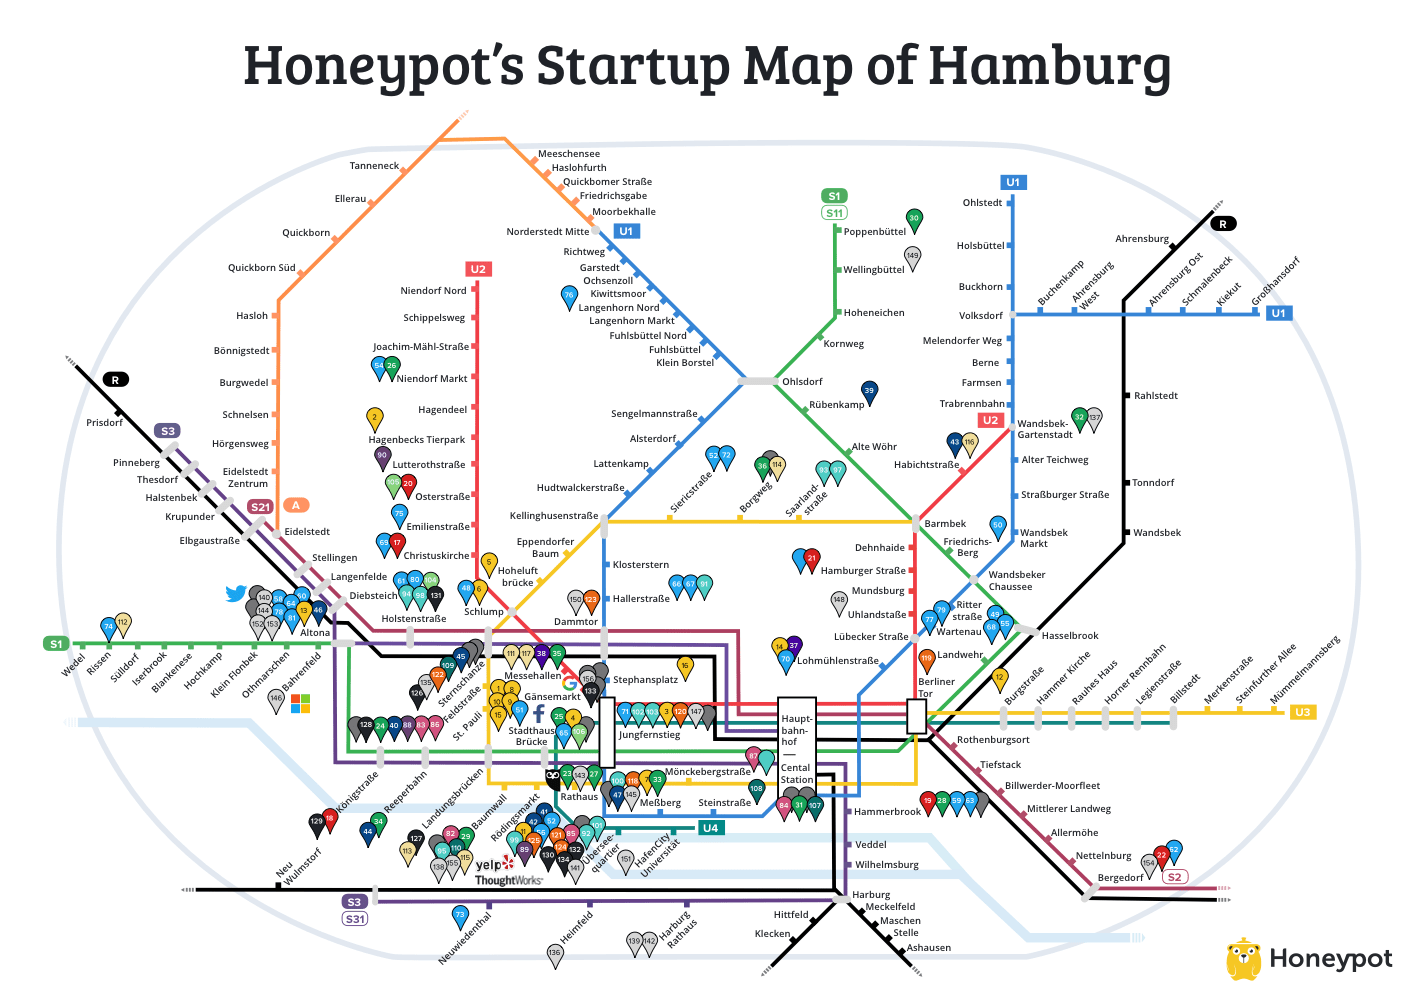 Badewannendoktor Hamburg Bergedorf The Ultimate Guide To Hamburg S Startup Scene Hamburg Tech Map